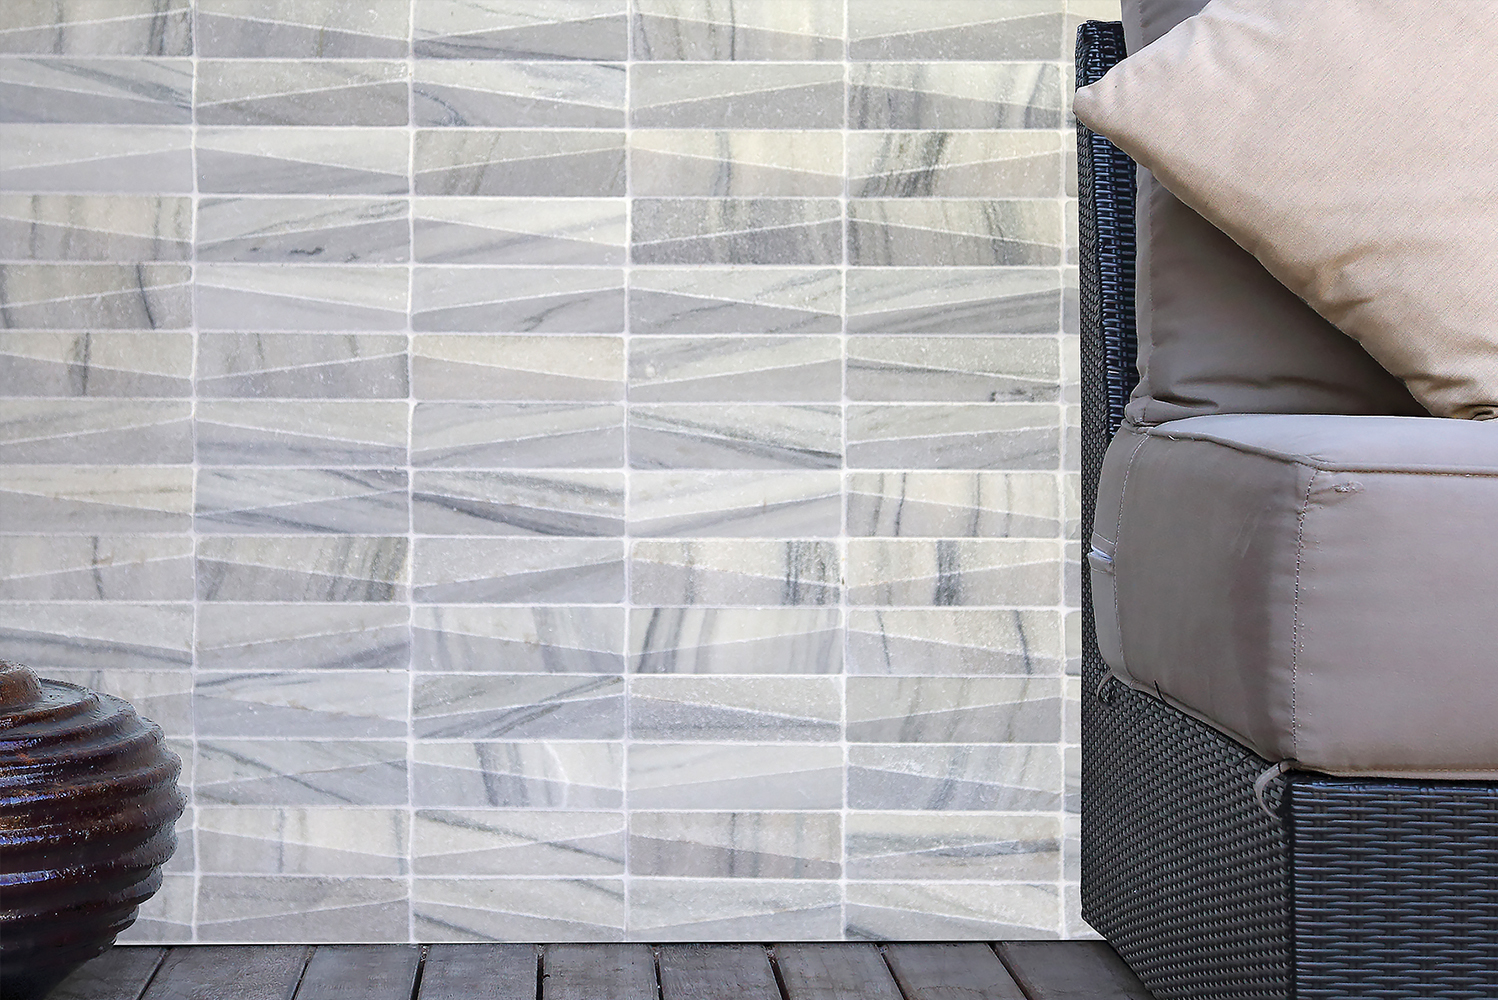 Two new colors—crystal white and typhoon grey—round out the line's range, which also includes sandstone mint and sandstone ocean.